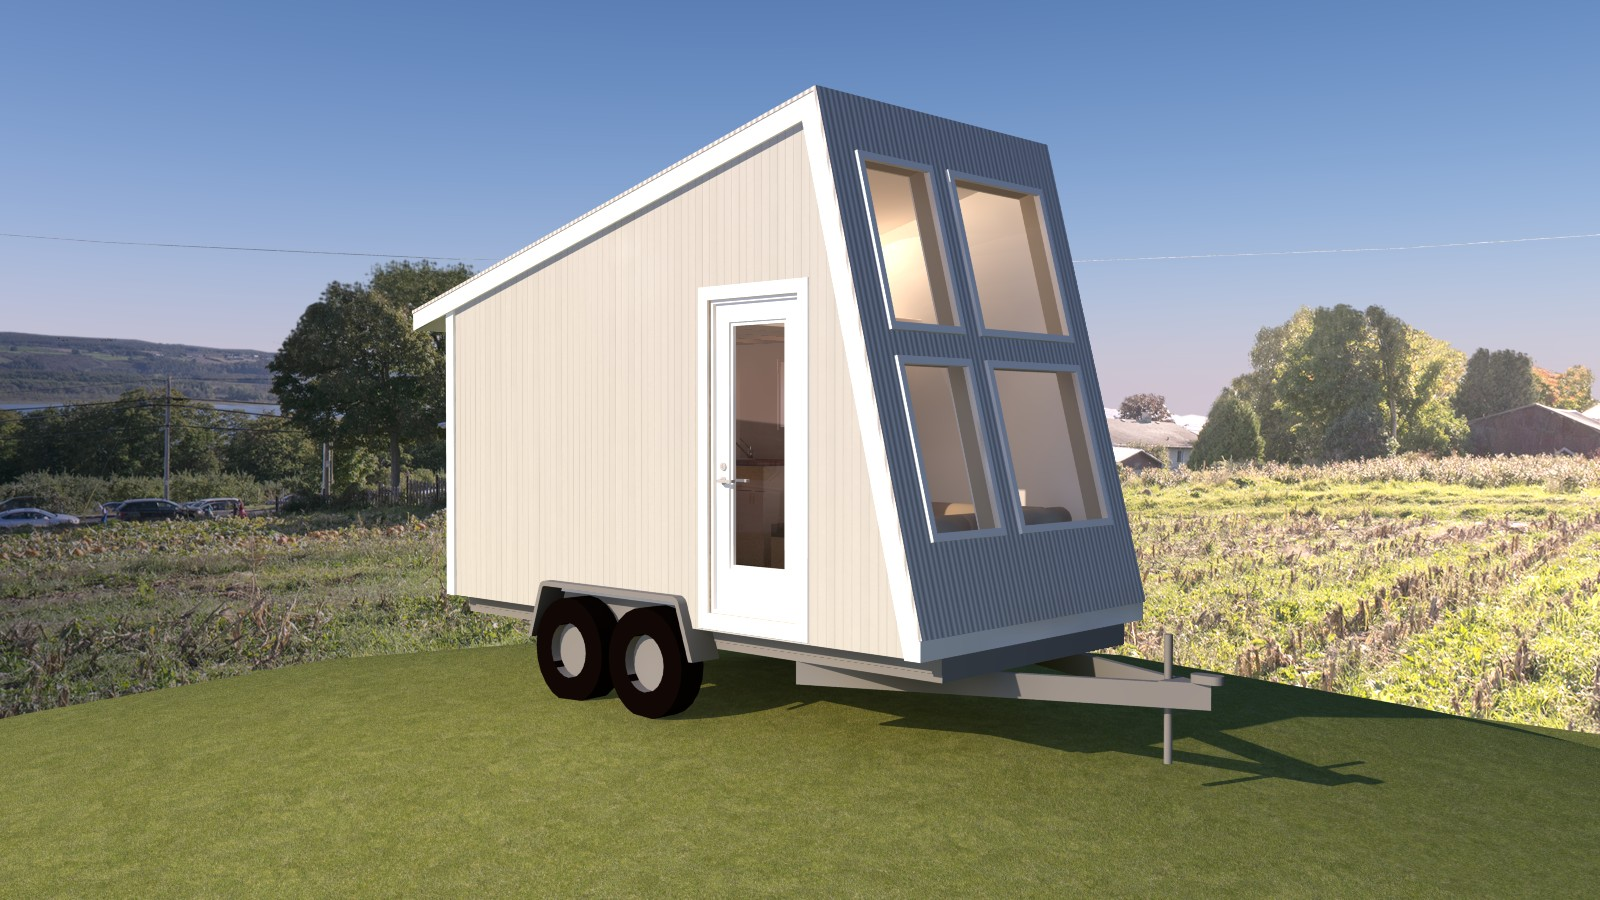 18 tiny house designs for Tiny houseplans